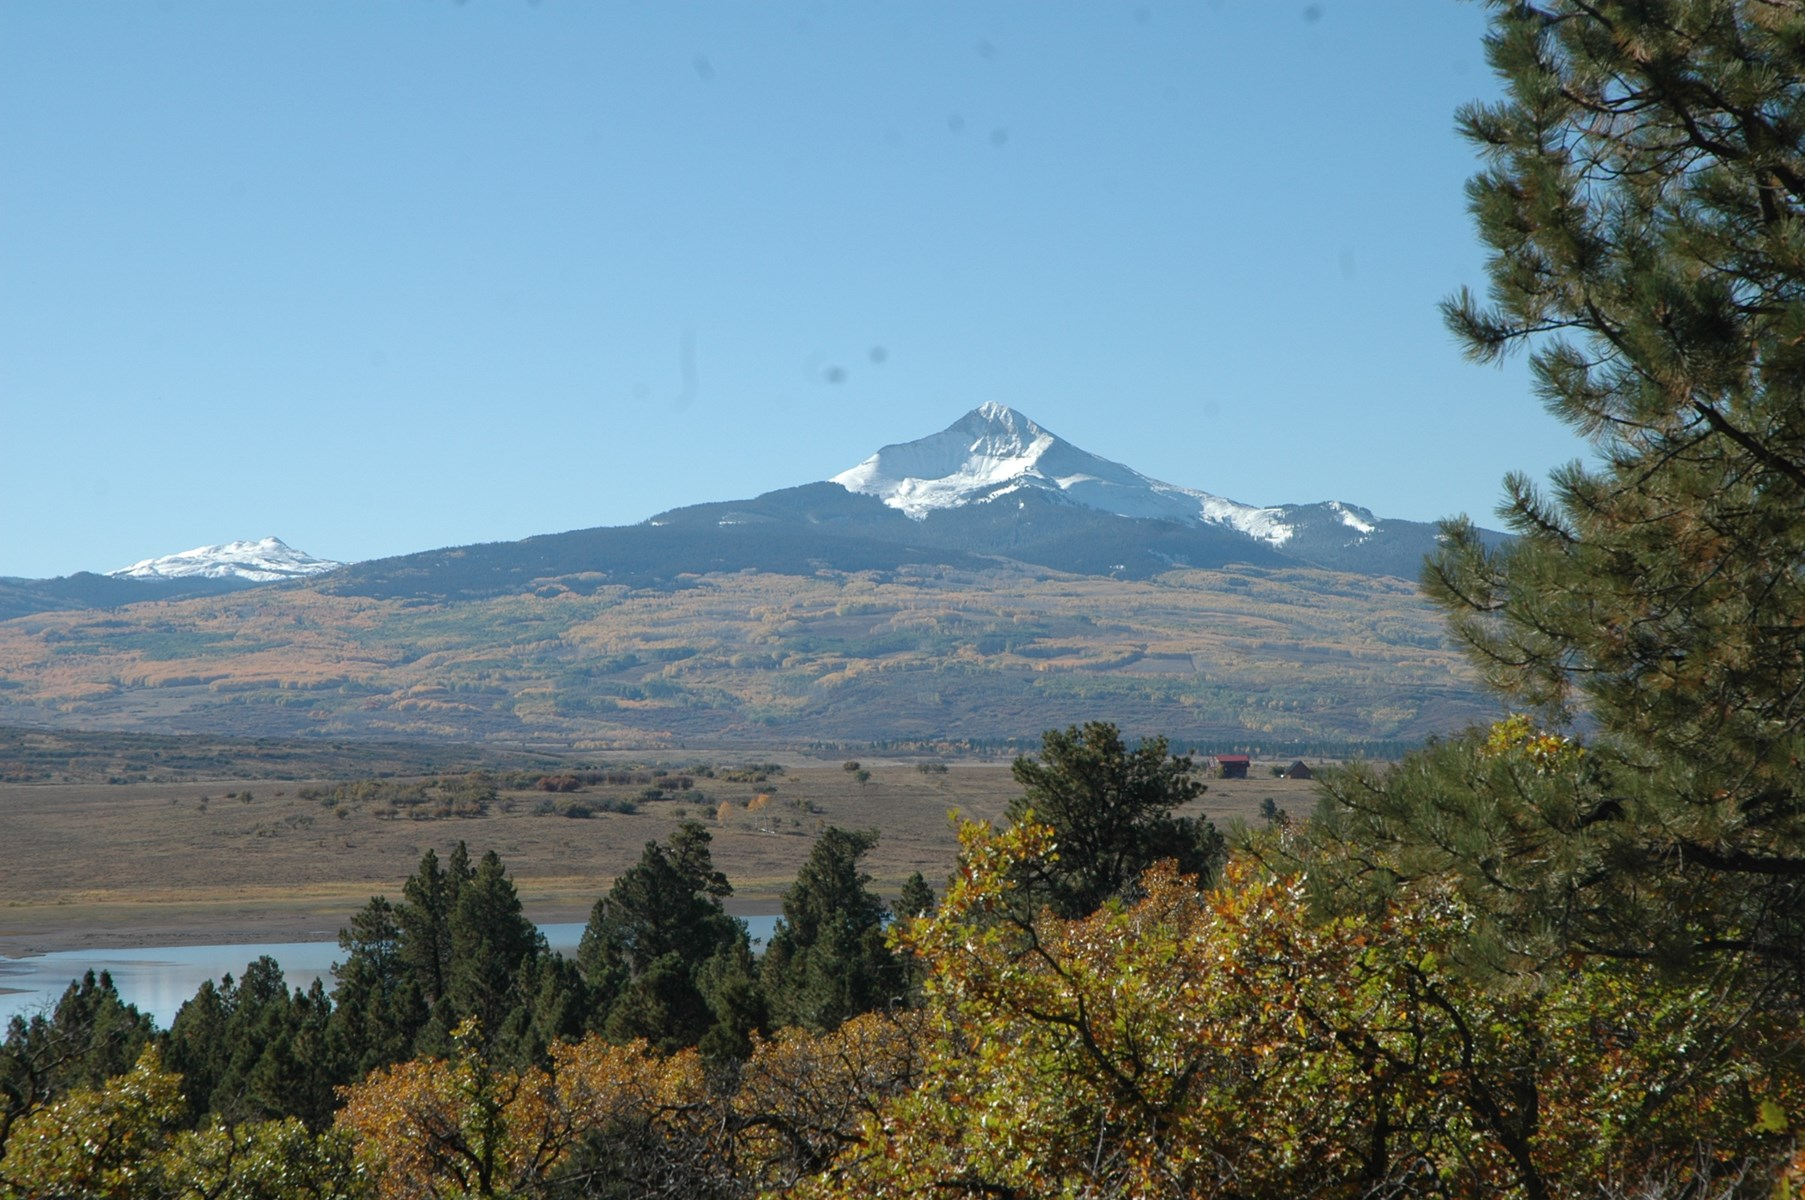 35 acres in Western Colorado with Lake access near Telluride